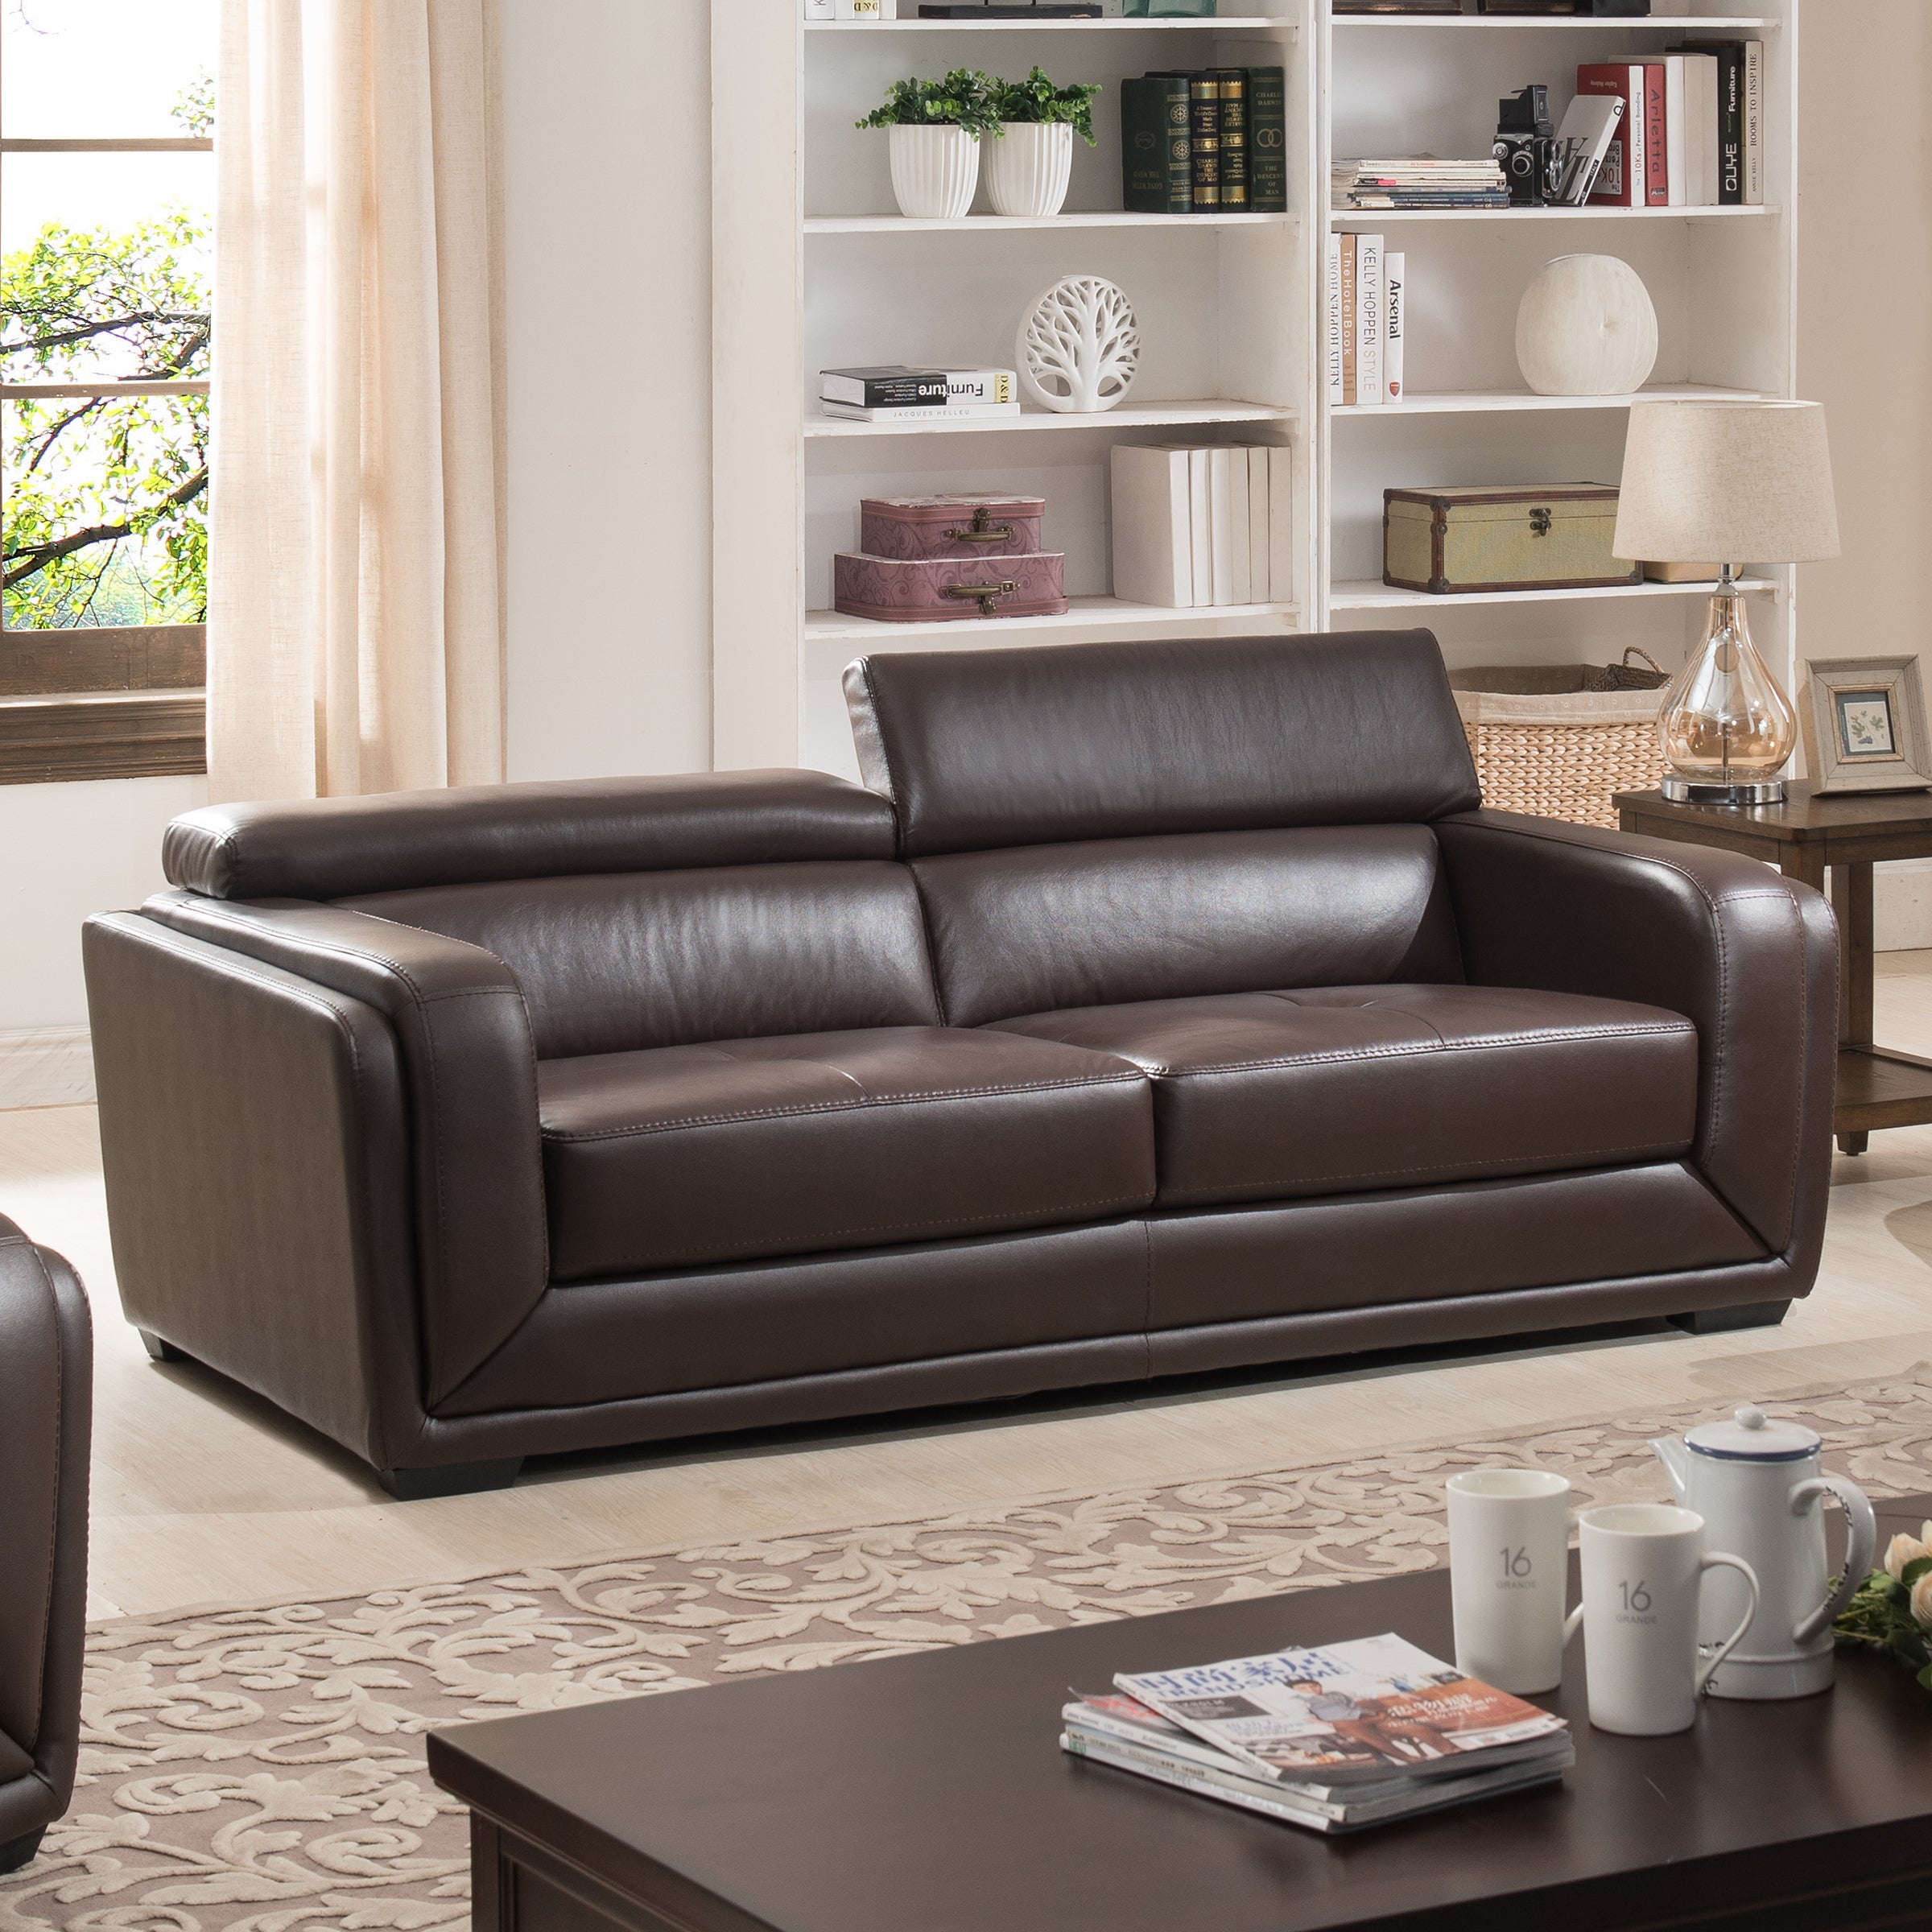 Christies home living calvin brown modern leather living room sofa